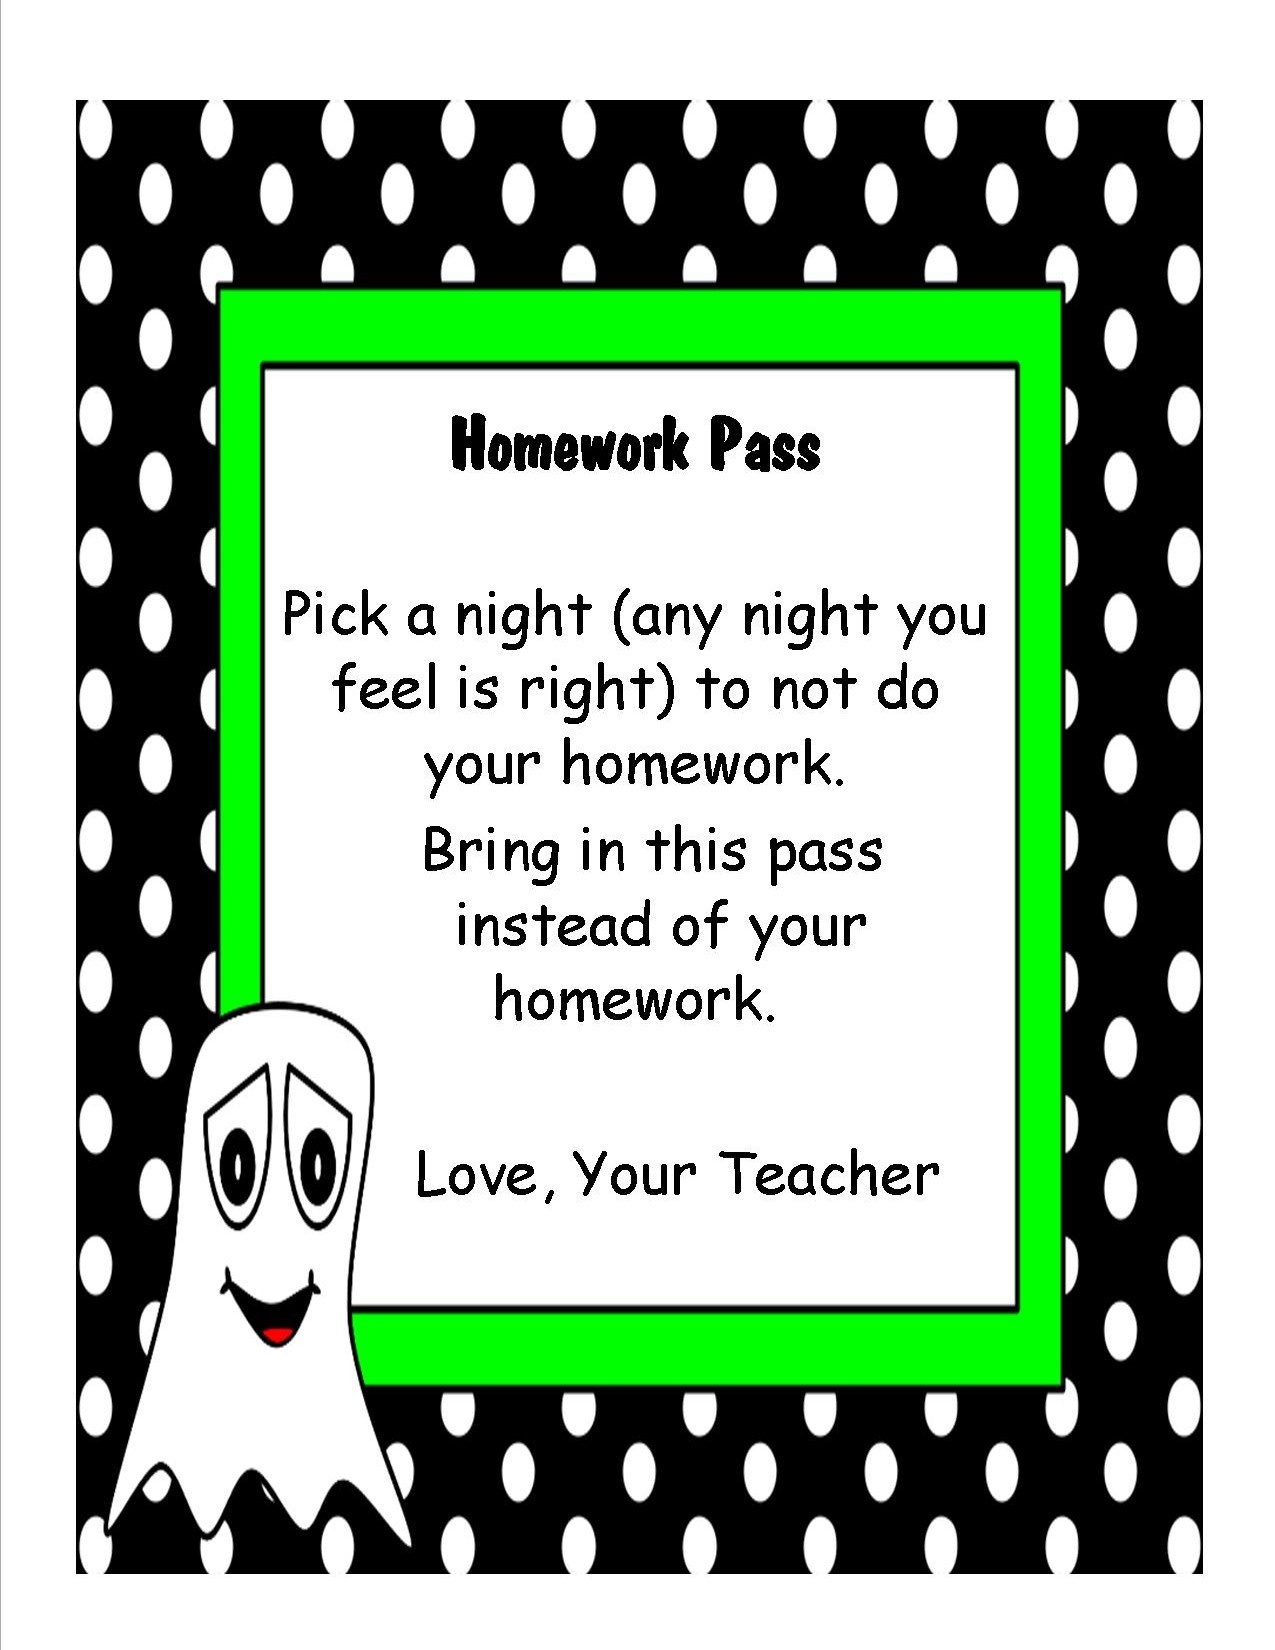 Teaching Heart Blog | From A Mom With A Teaching Heart On Feedspot - Free Printable Halloween Homework Pass